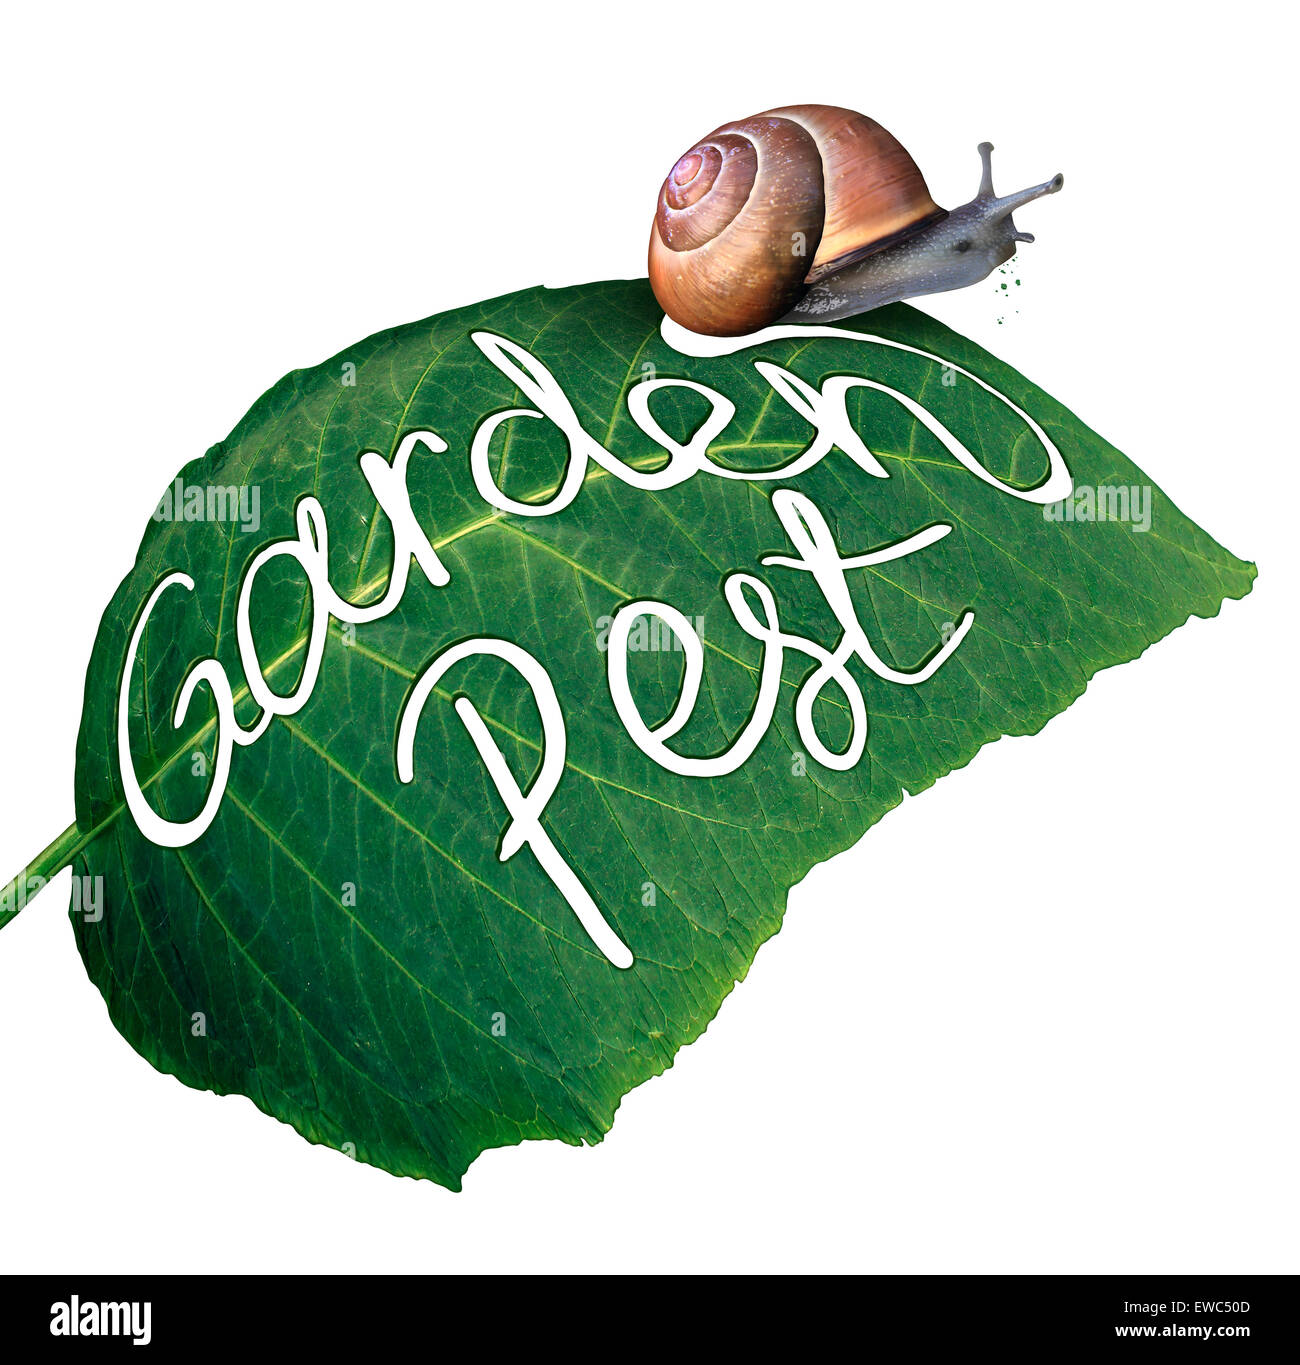 Garden pest symbol and gardening problem as a snail eating and destroying a green leaf with an eaten chewed hole - Stock Image